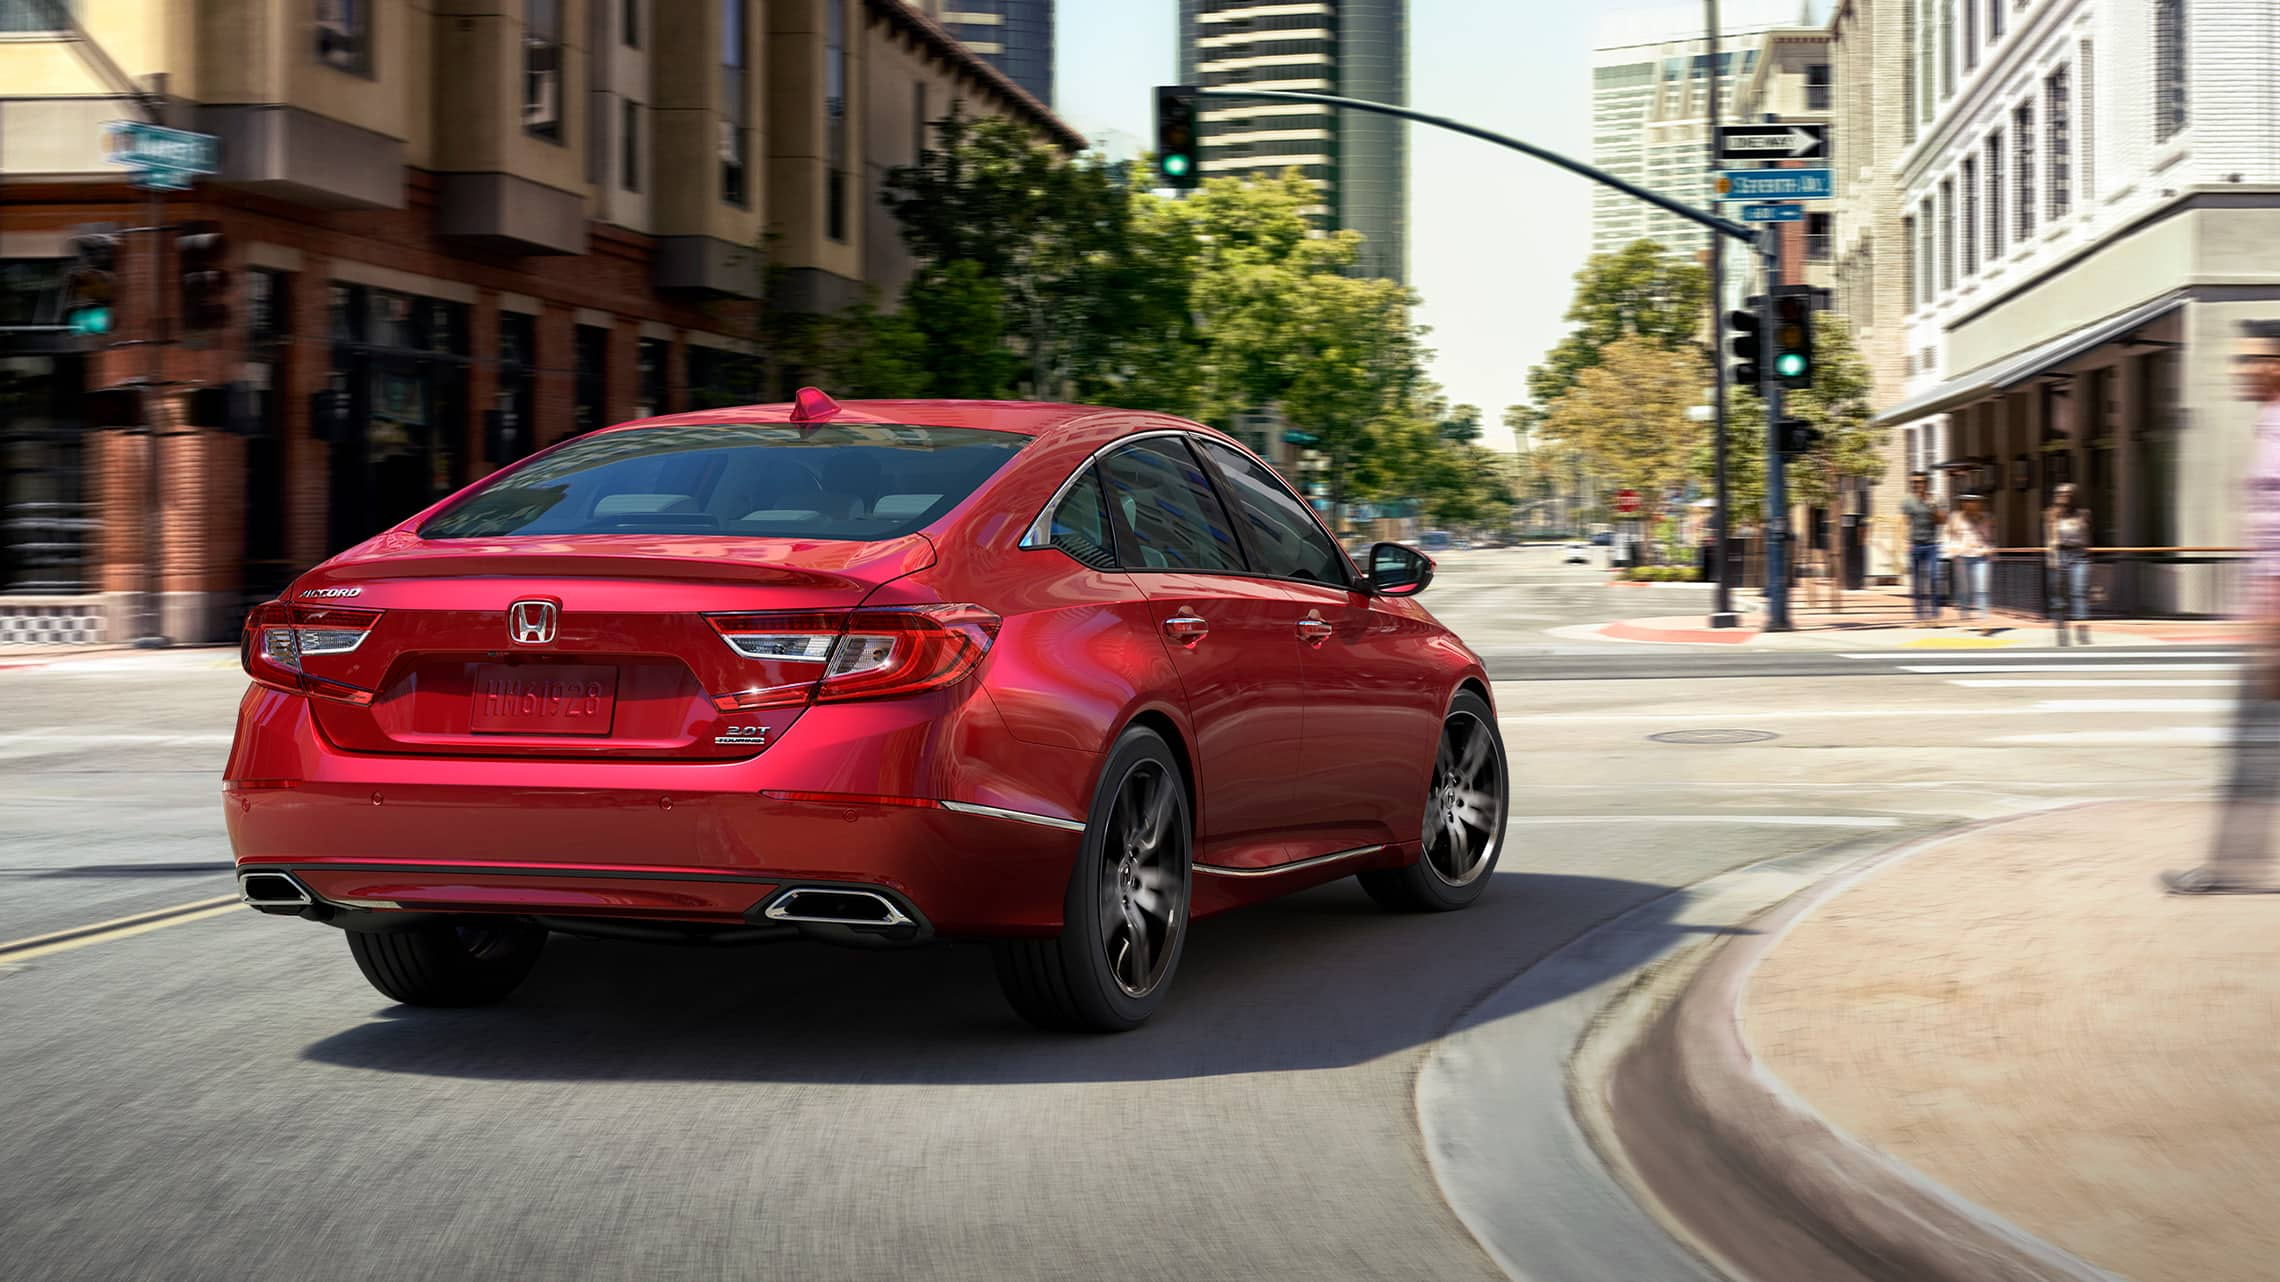 2021 Honda Accord Touring 2.0T in Radiant Red Metallic, making a turn at a downtown intersection.